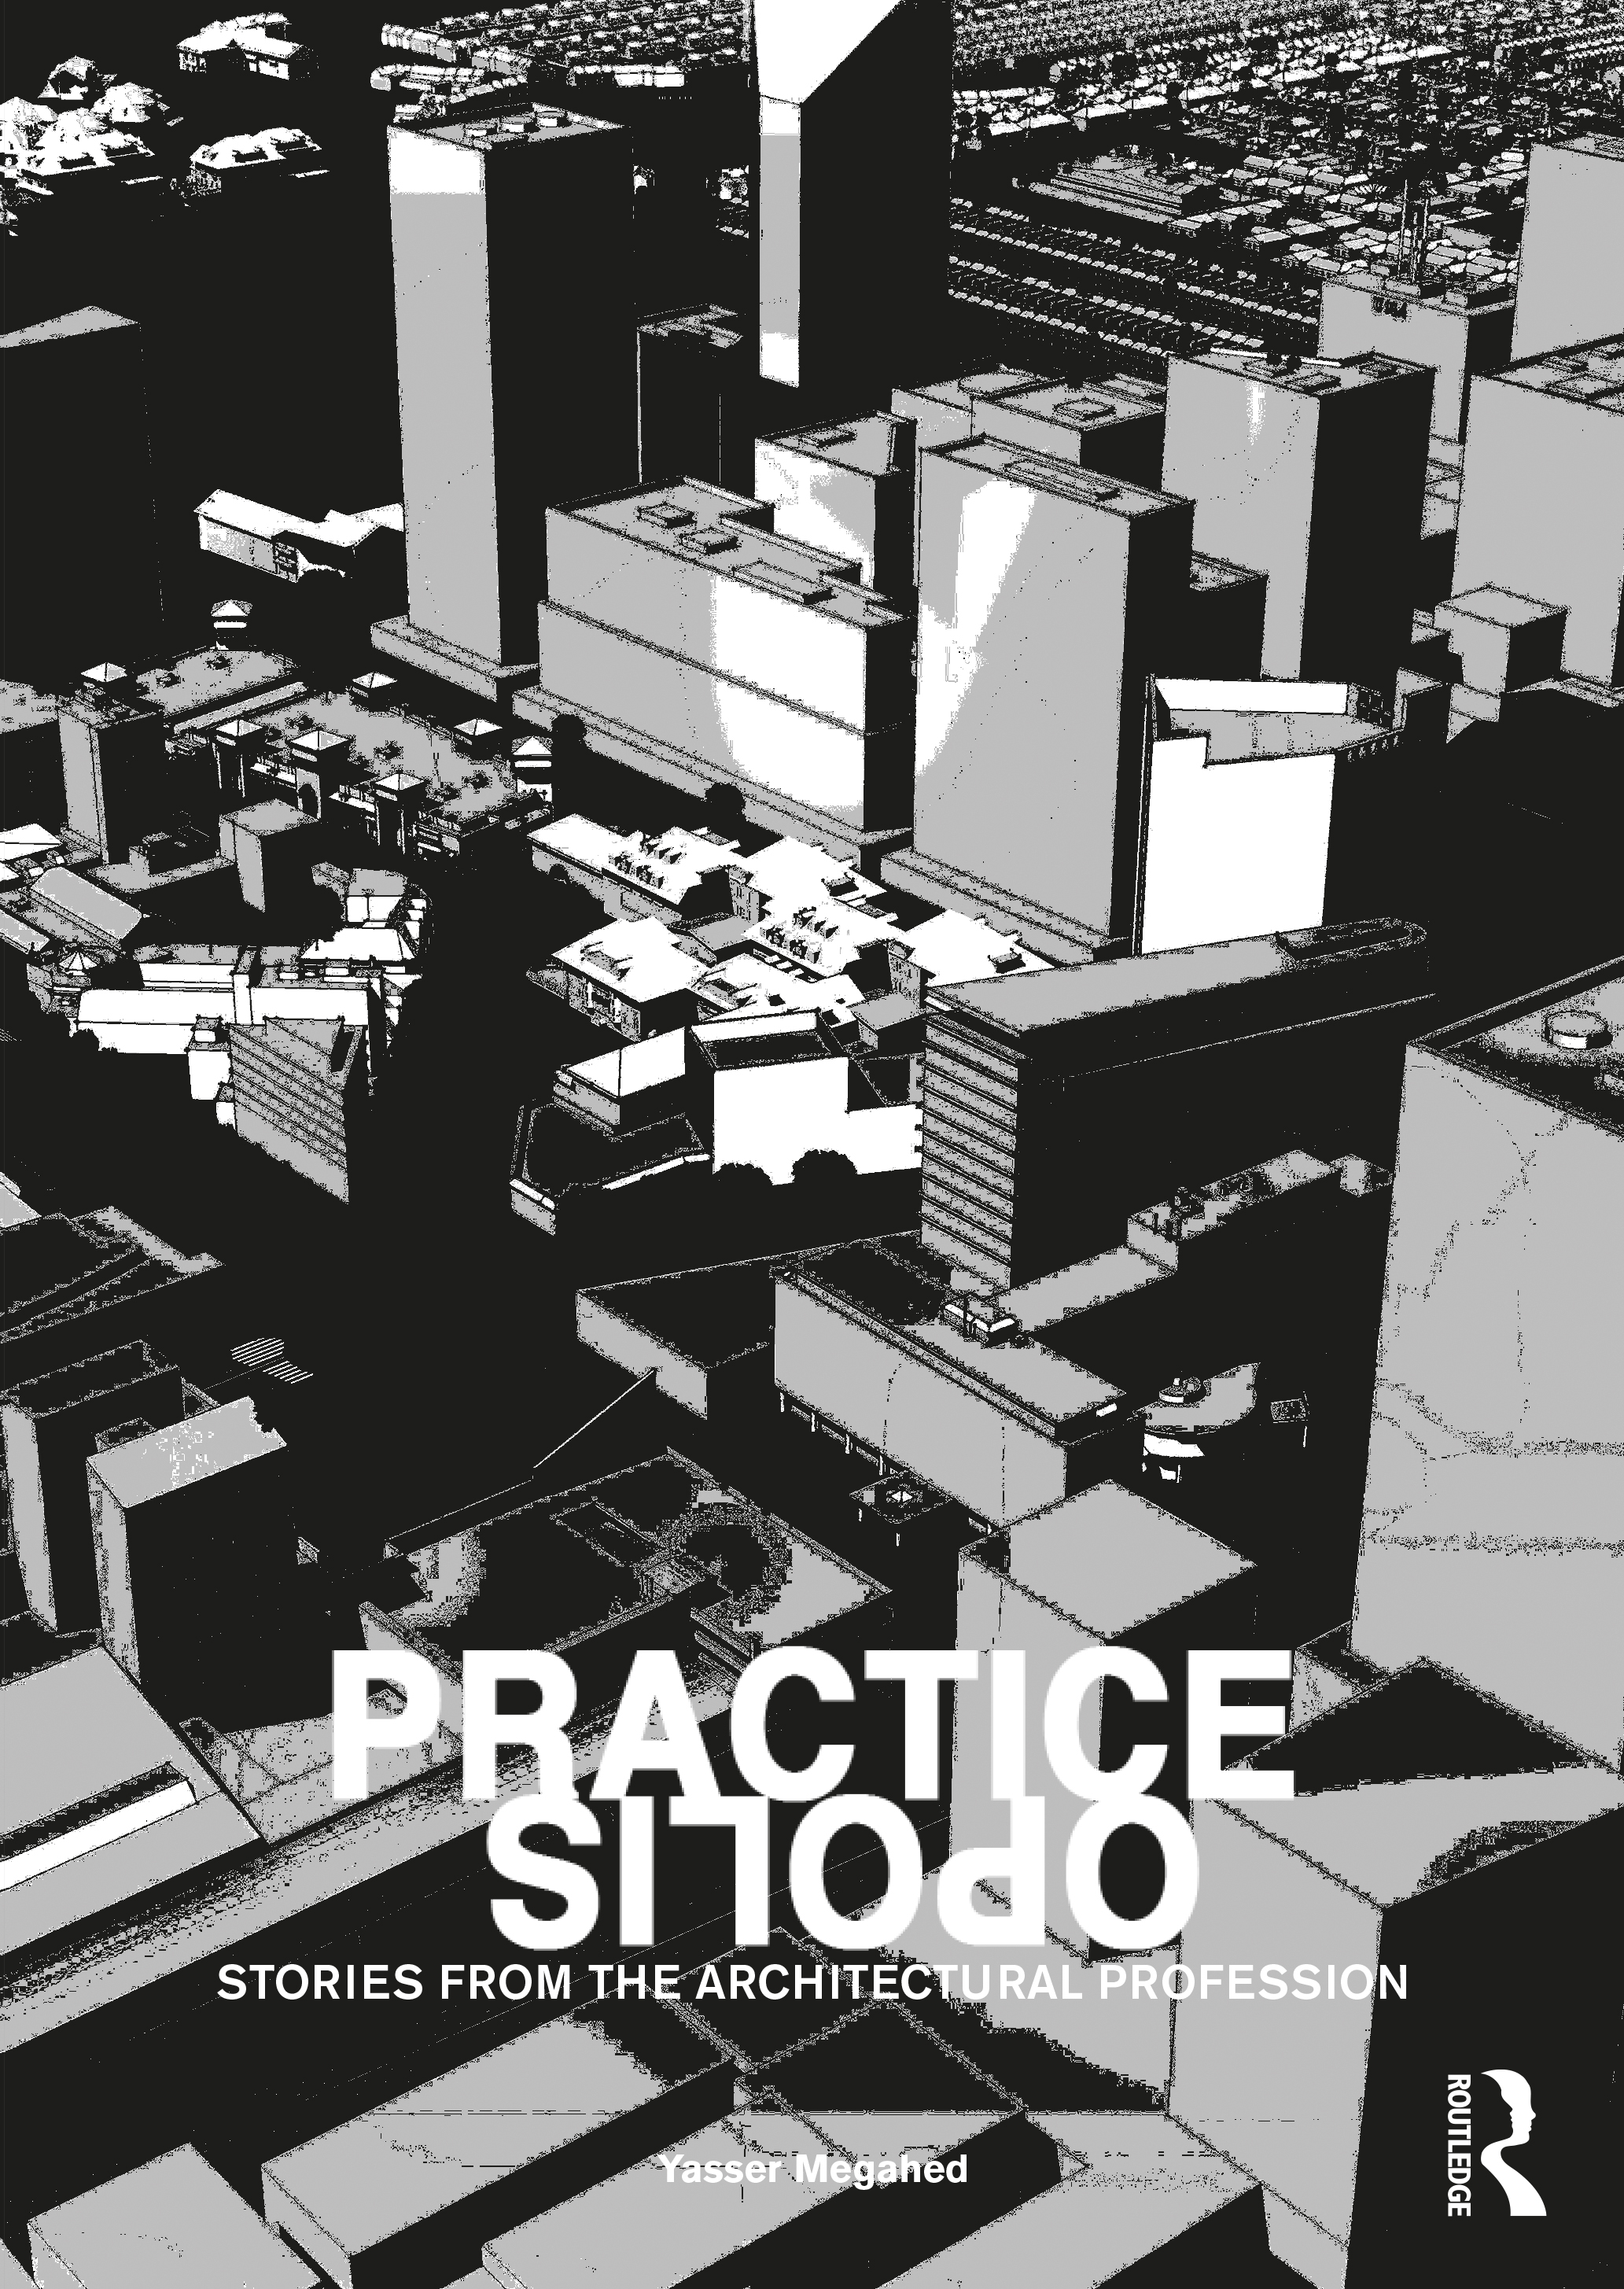 Practiceopolis: Stories from the Architectural Profession book cover